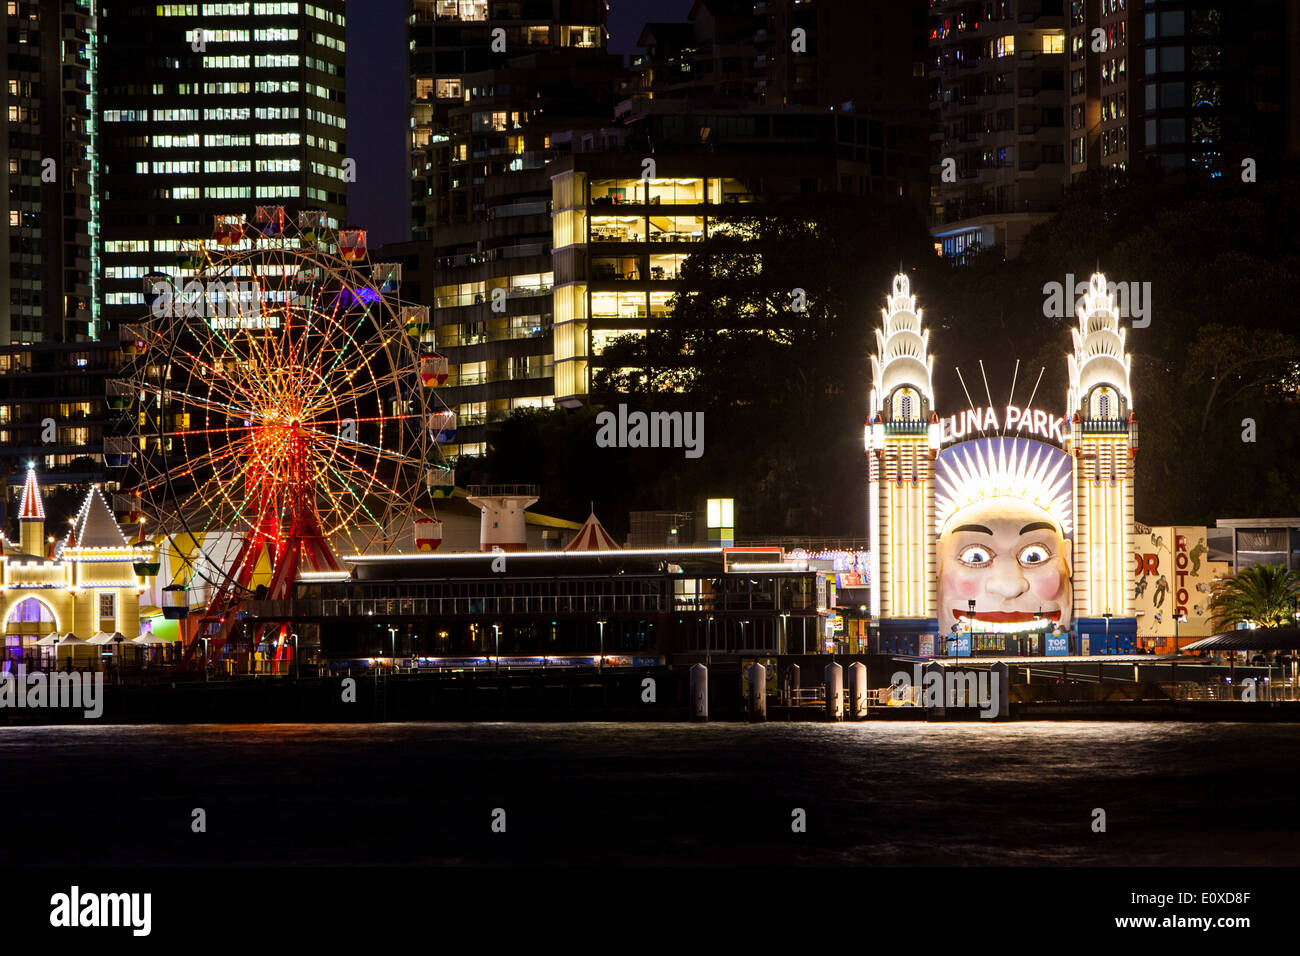 Luna Park on a clear autumn evening in Sydney, Australia - Stock Image